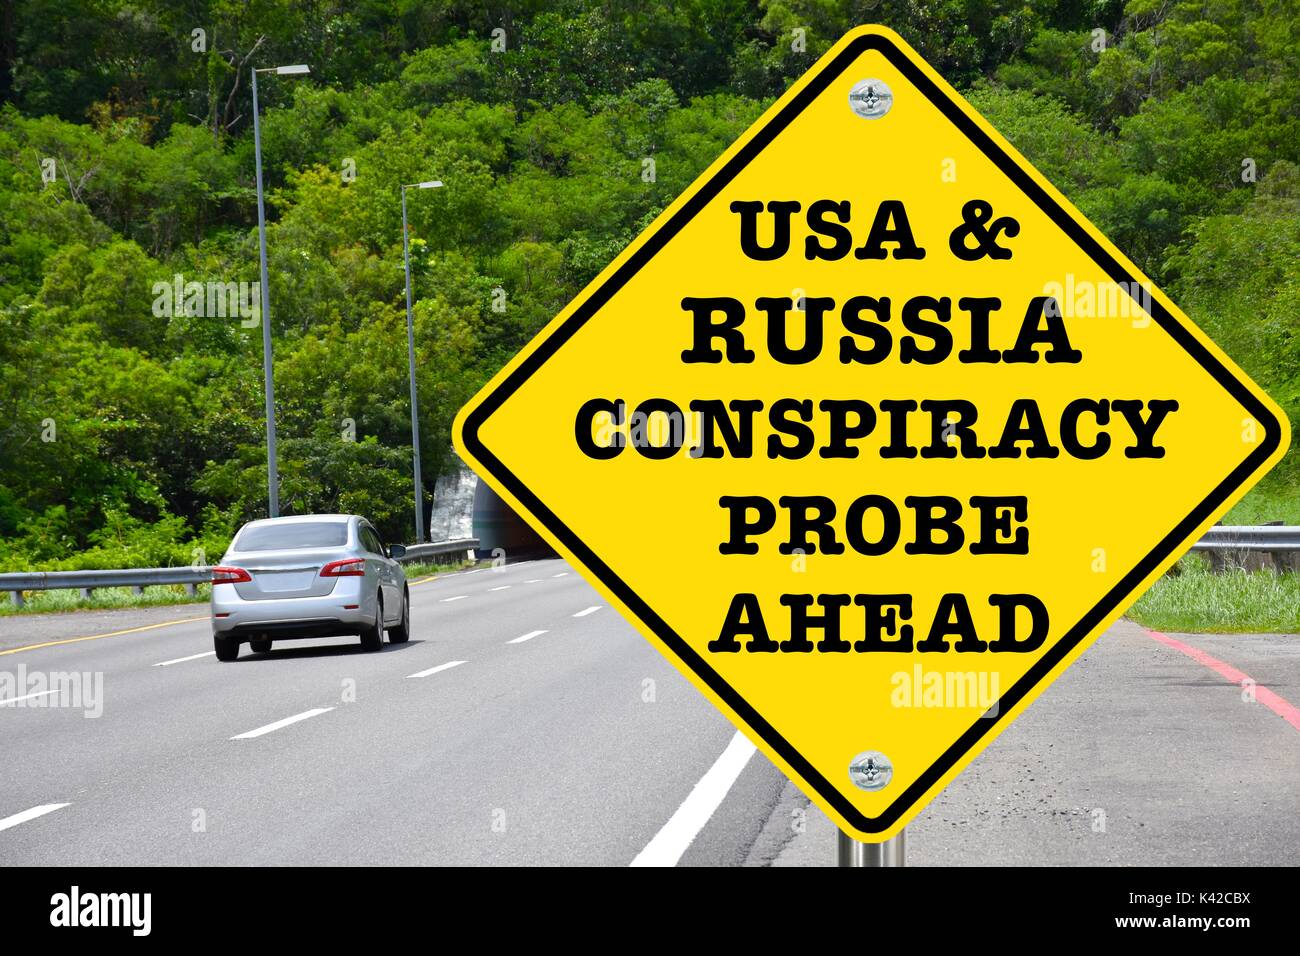 USA And Russia Conspiracy Probe Ahead, warning road sign - Stock Image